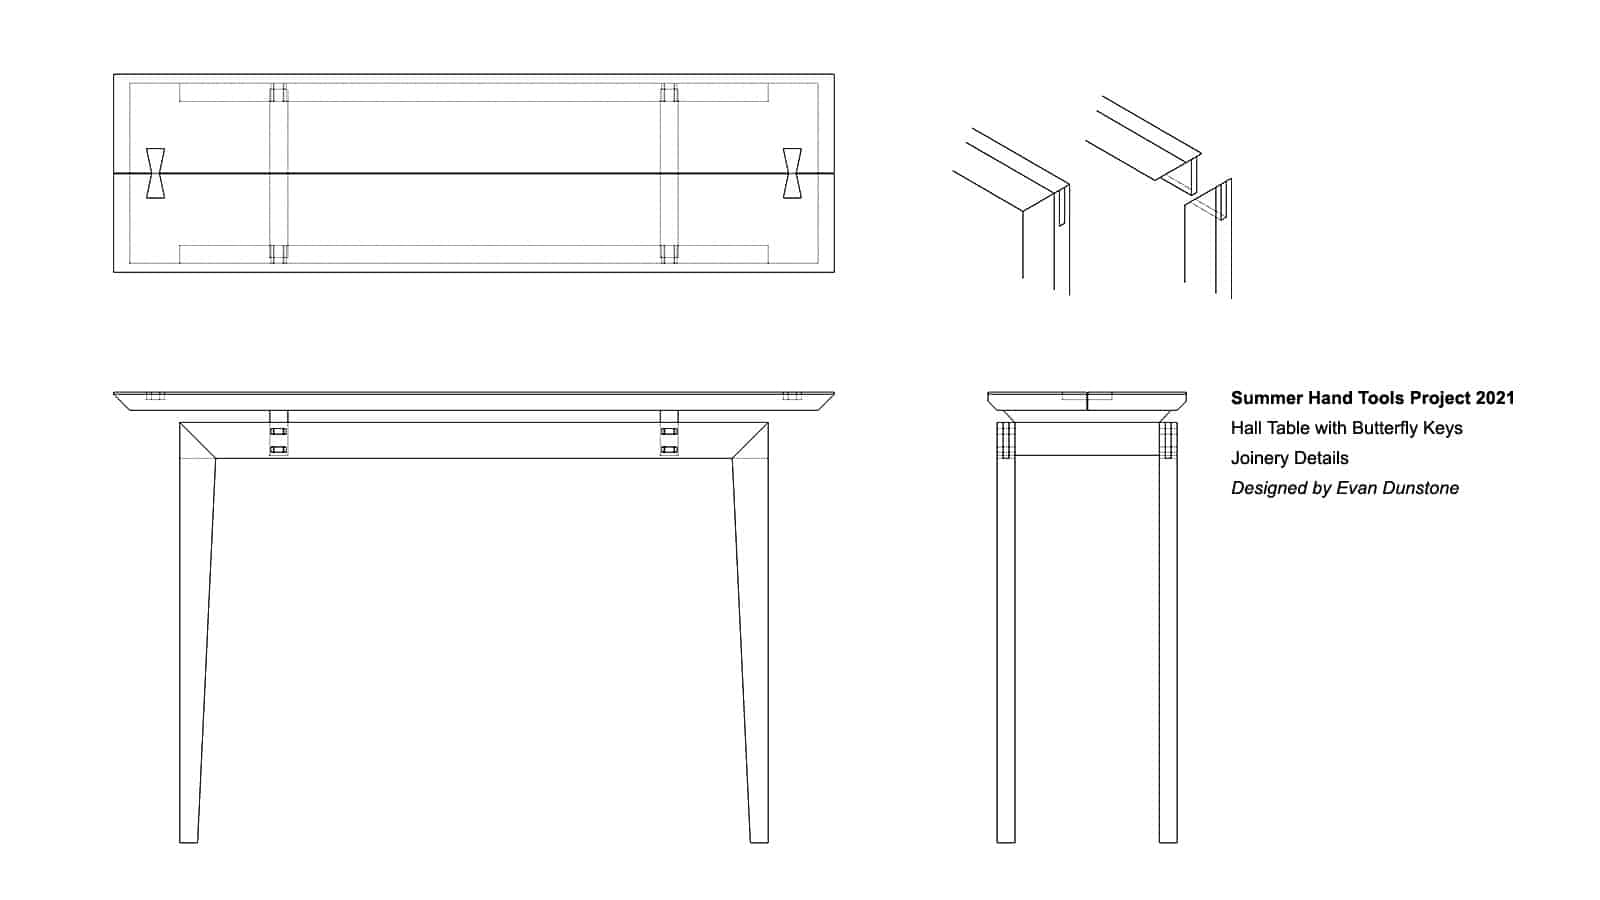 Summer Hand Tools Hall Table Design